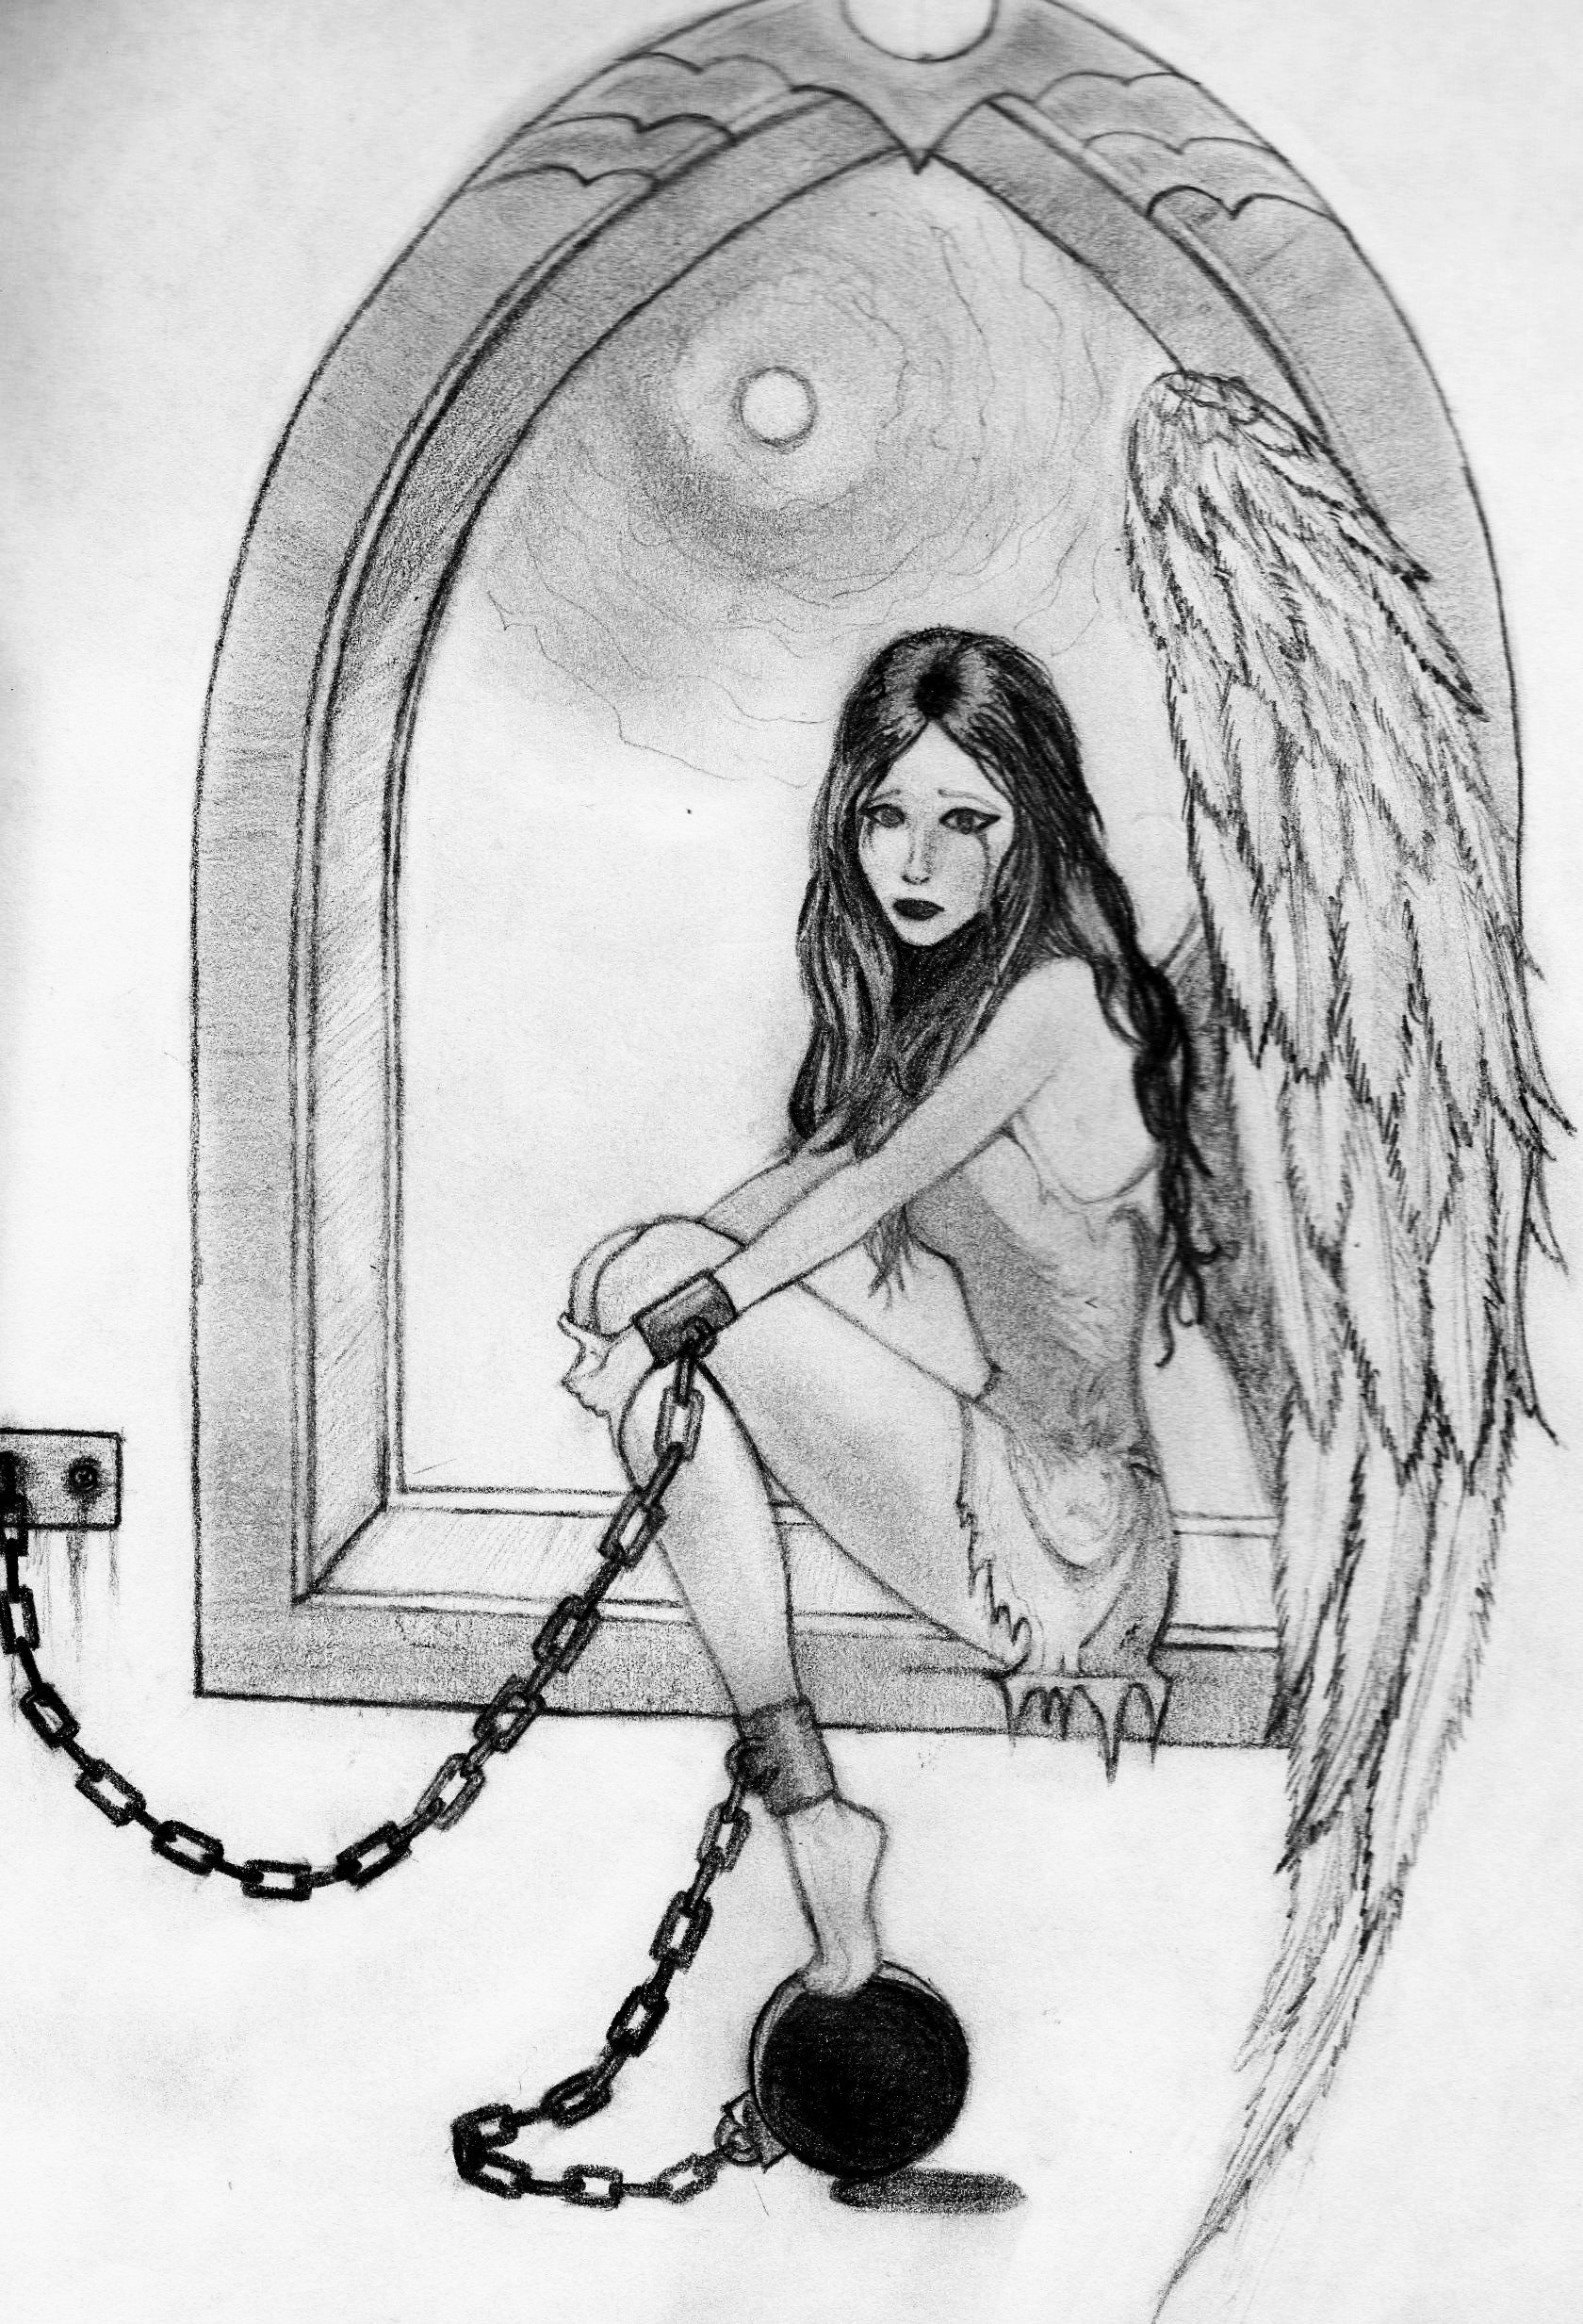 Pencil Sketches of Sad Angels Angel Pencil Sketch by a